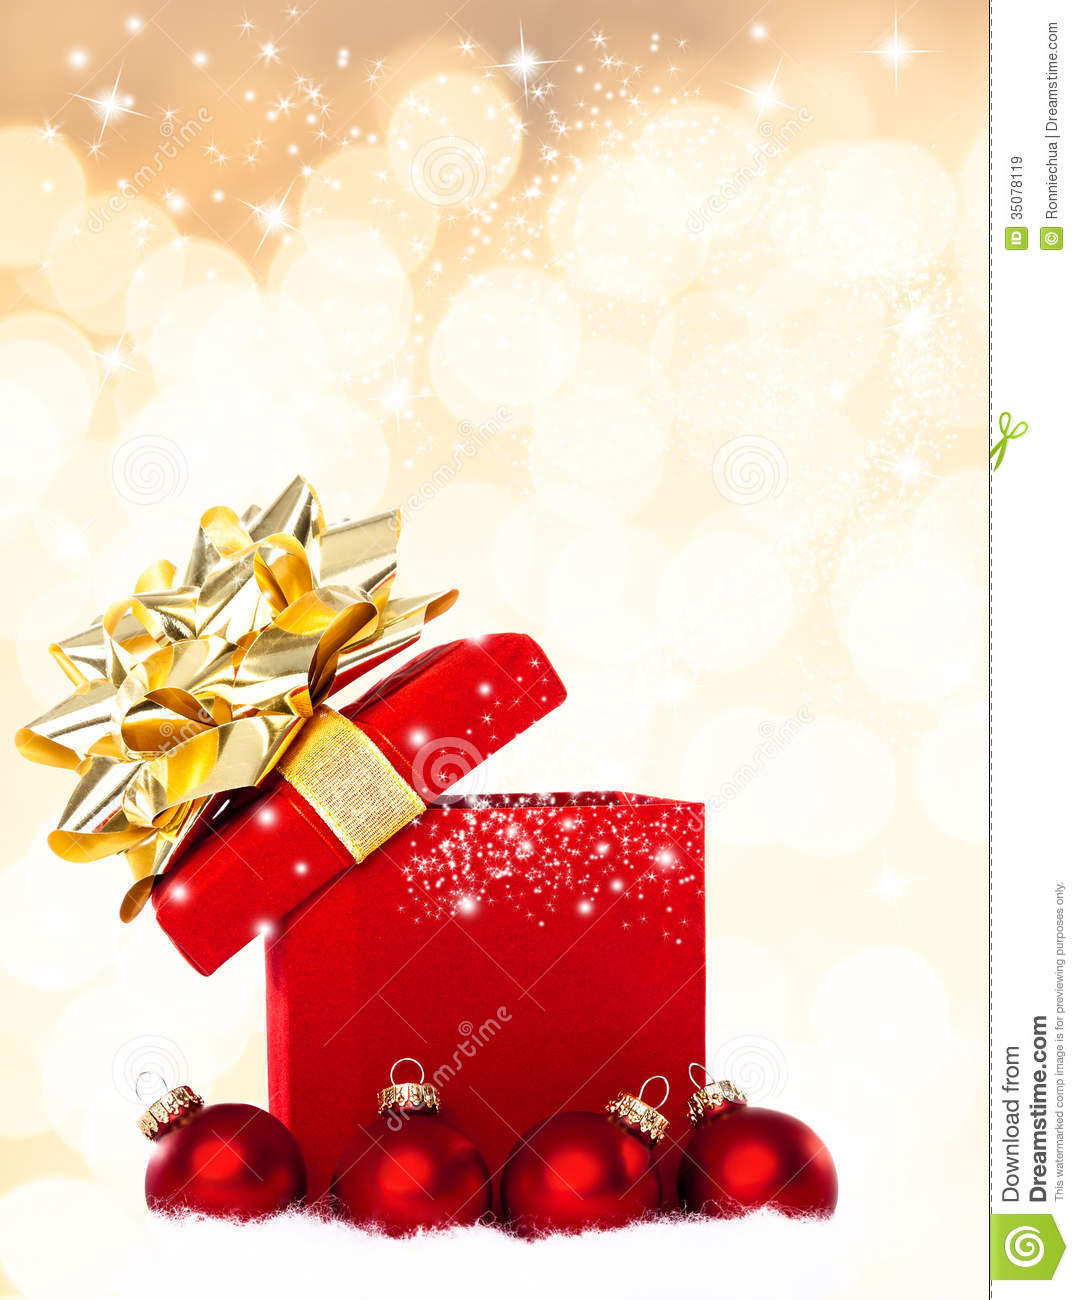 Christmas Gift Background: Magical Christmas Gift Background With Red Baubles Stock